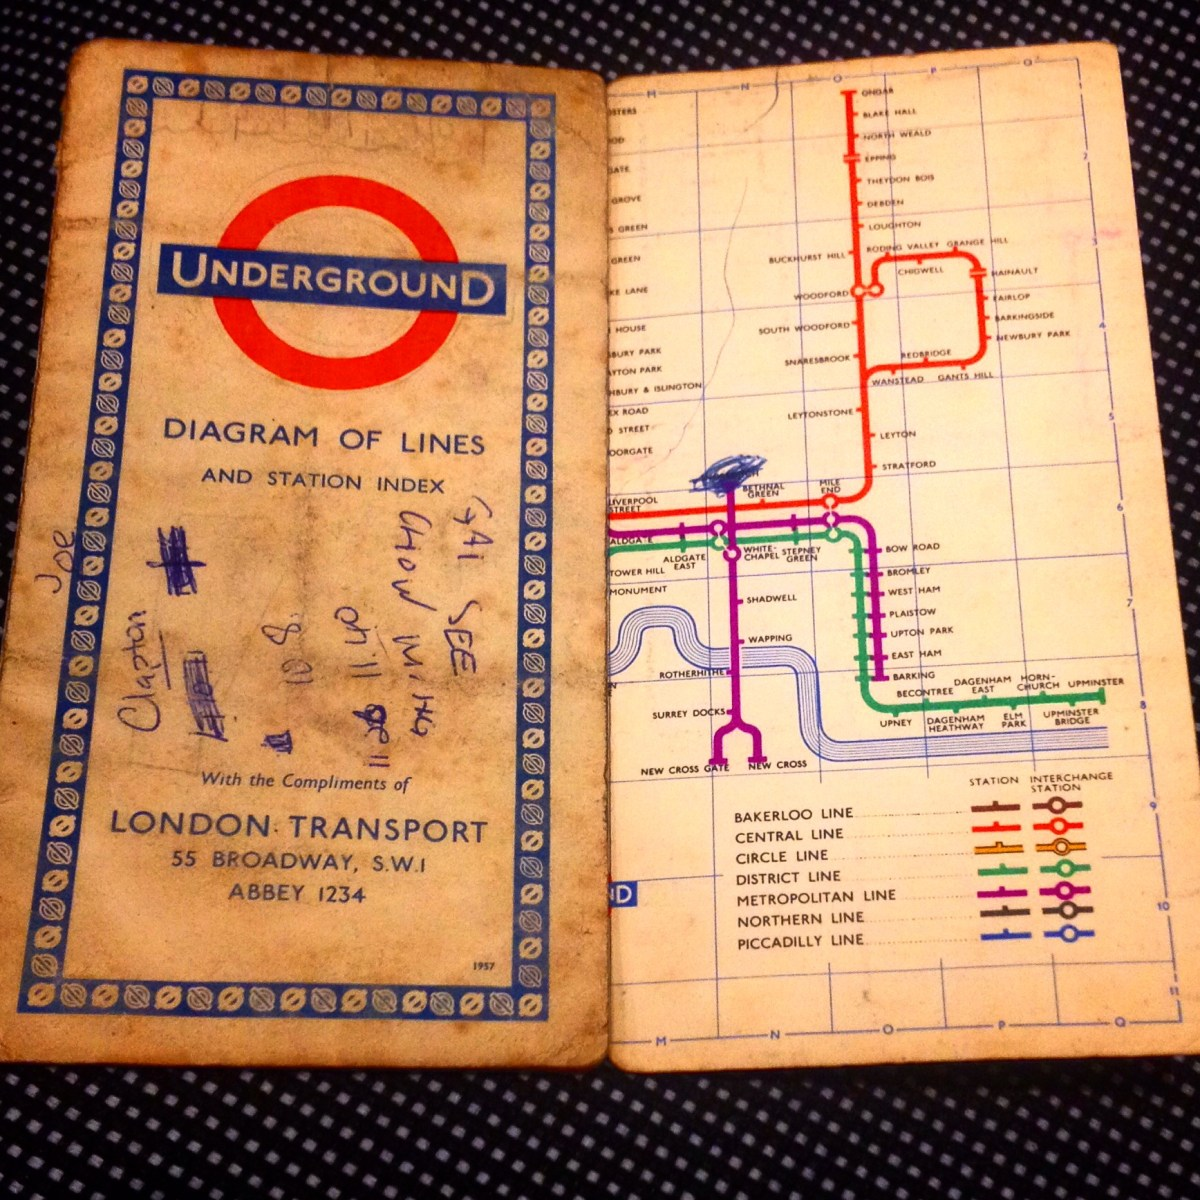 The Theology of Power - and a Tube map